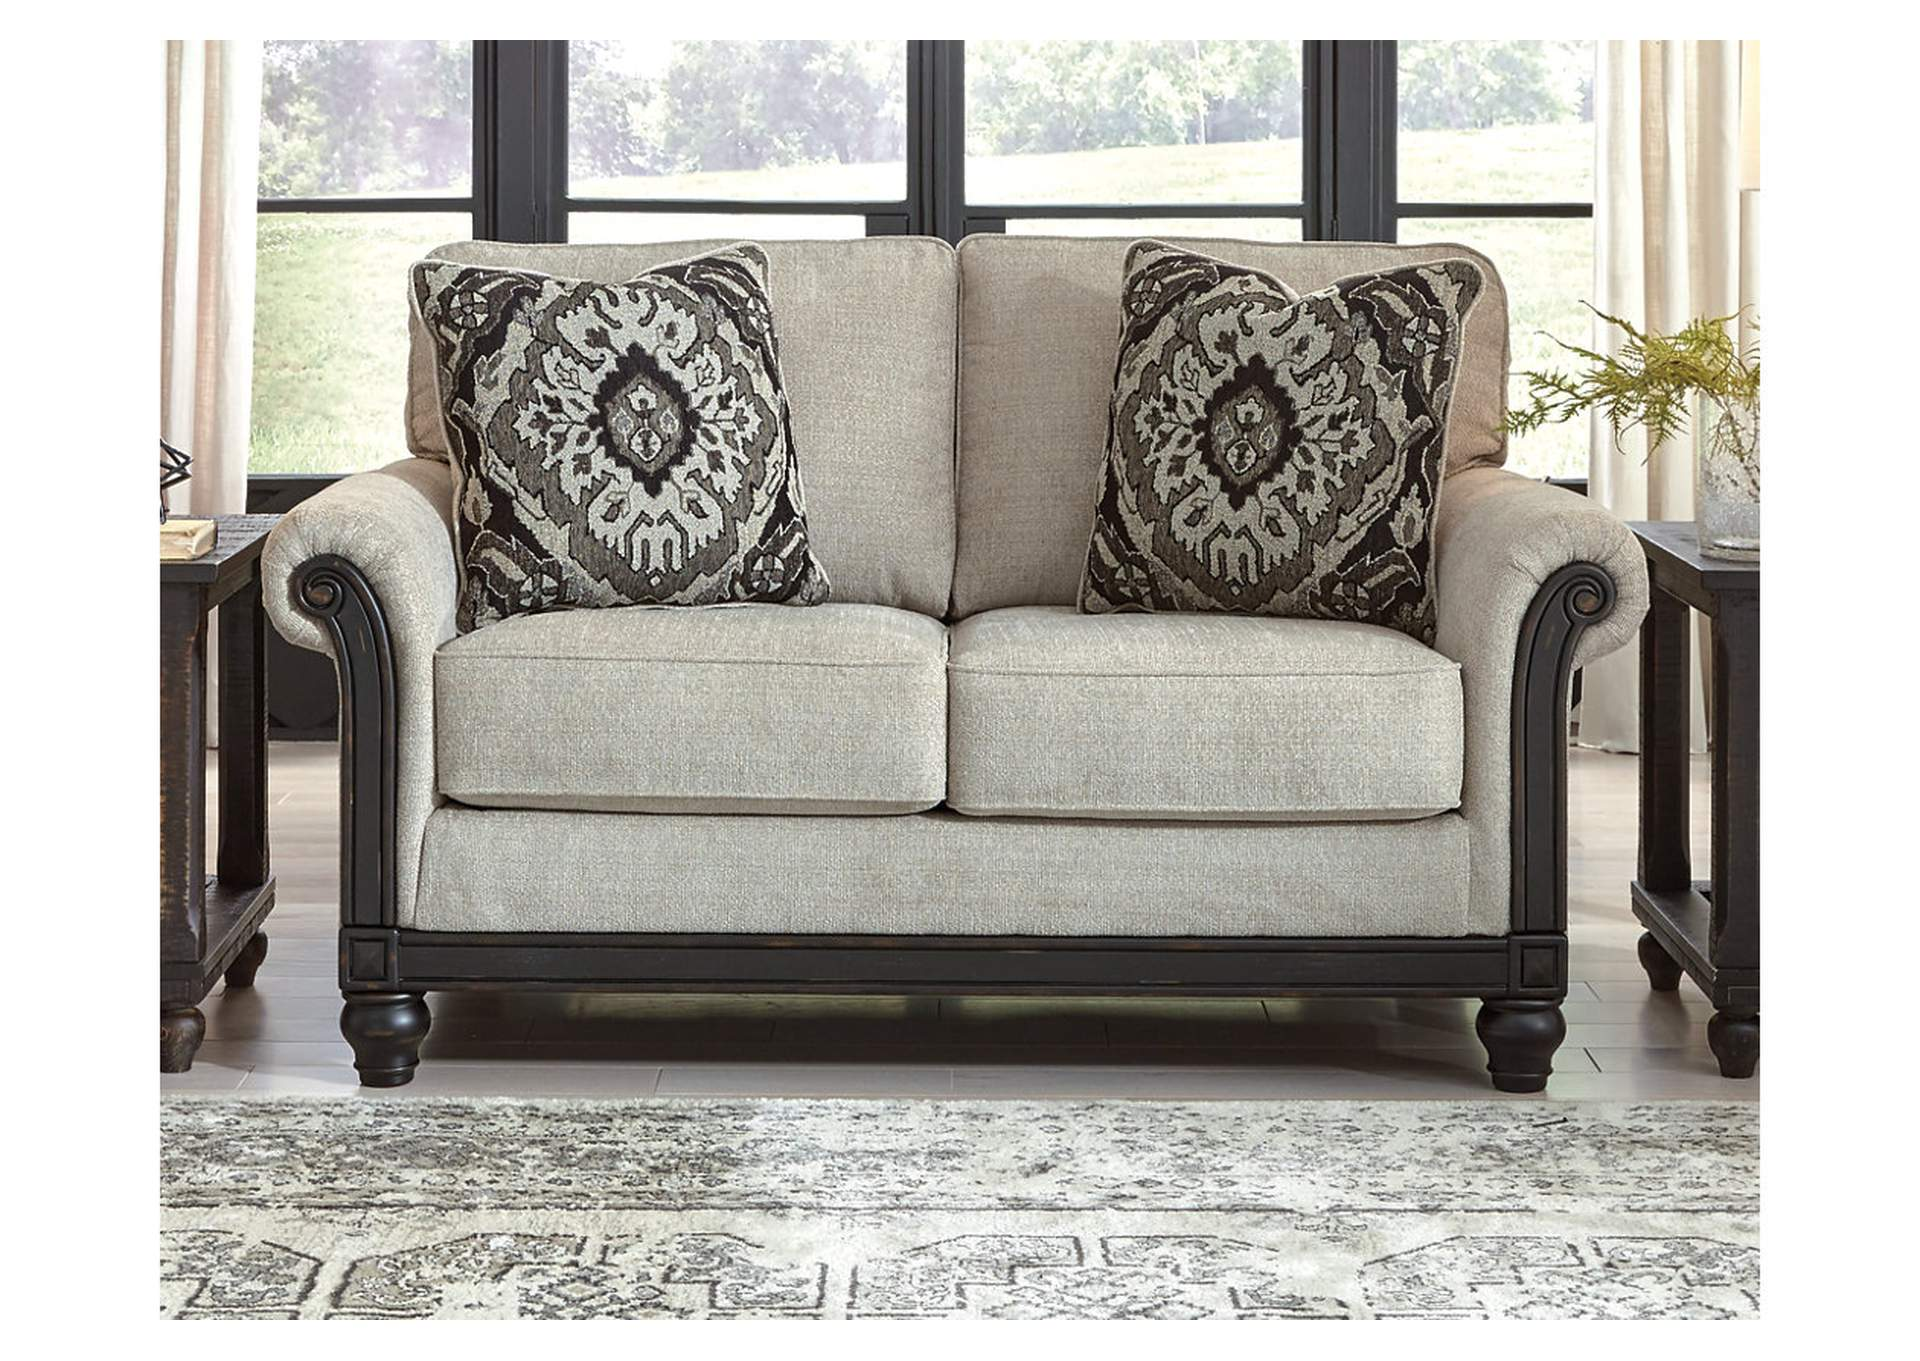 Benbrook Ash Loveseat,Signature Design By Ashley